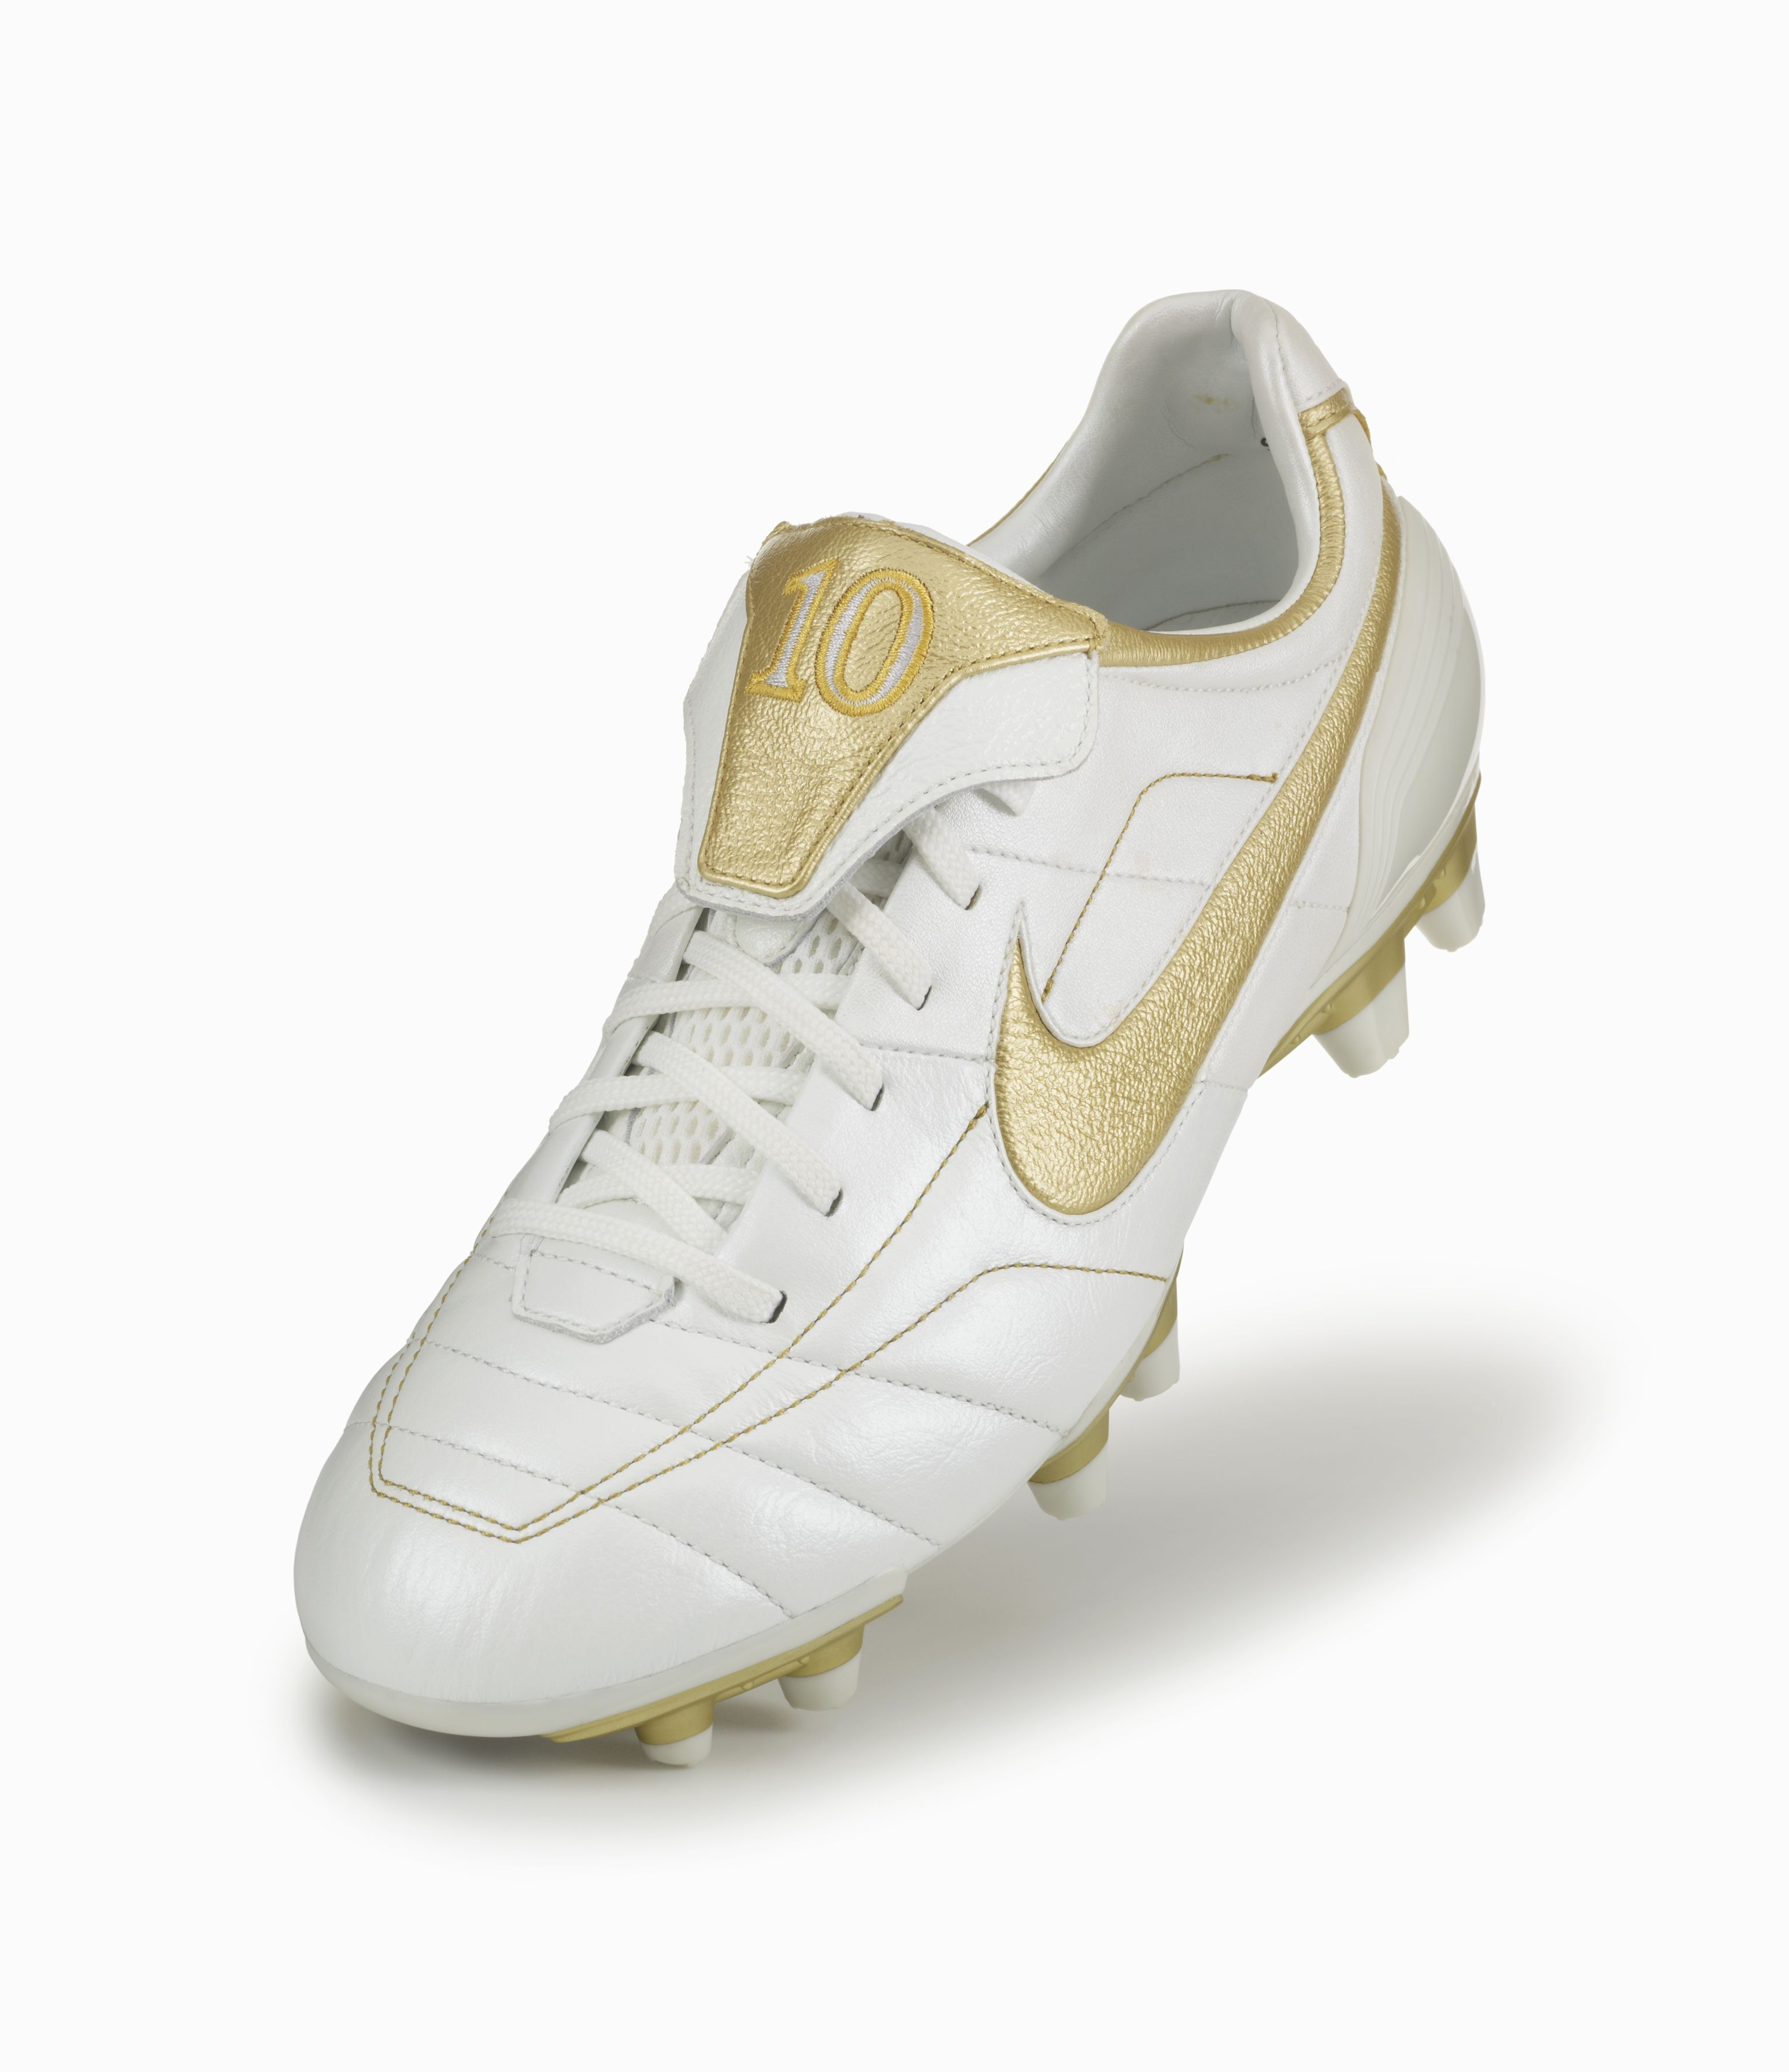 efaf9ceb9 nike tiempo legend 2 - Google Search